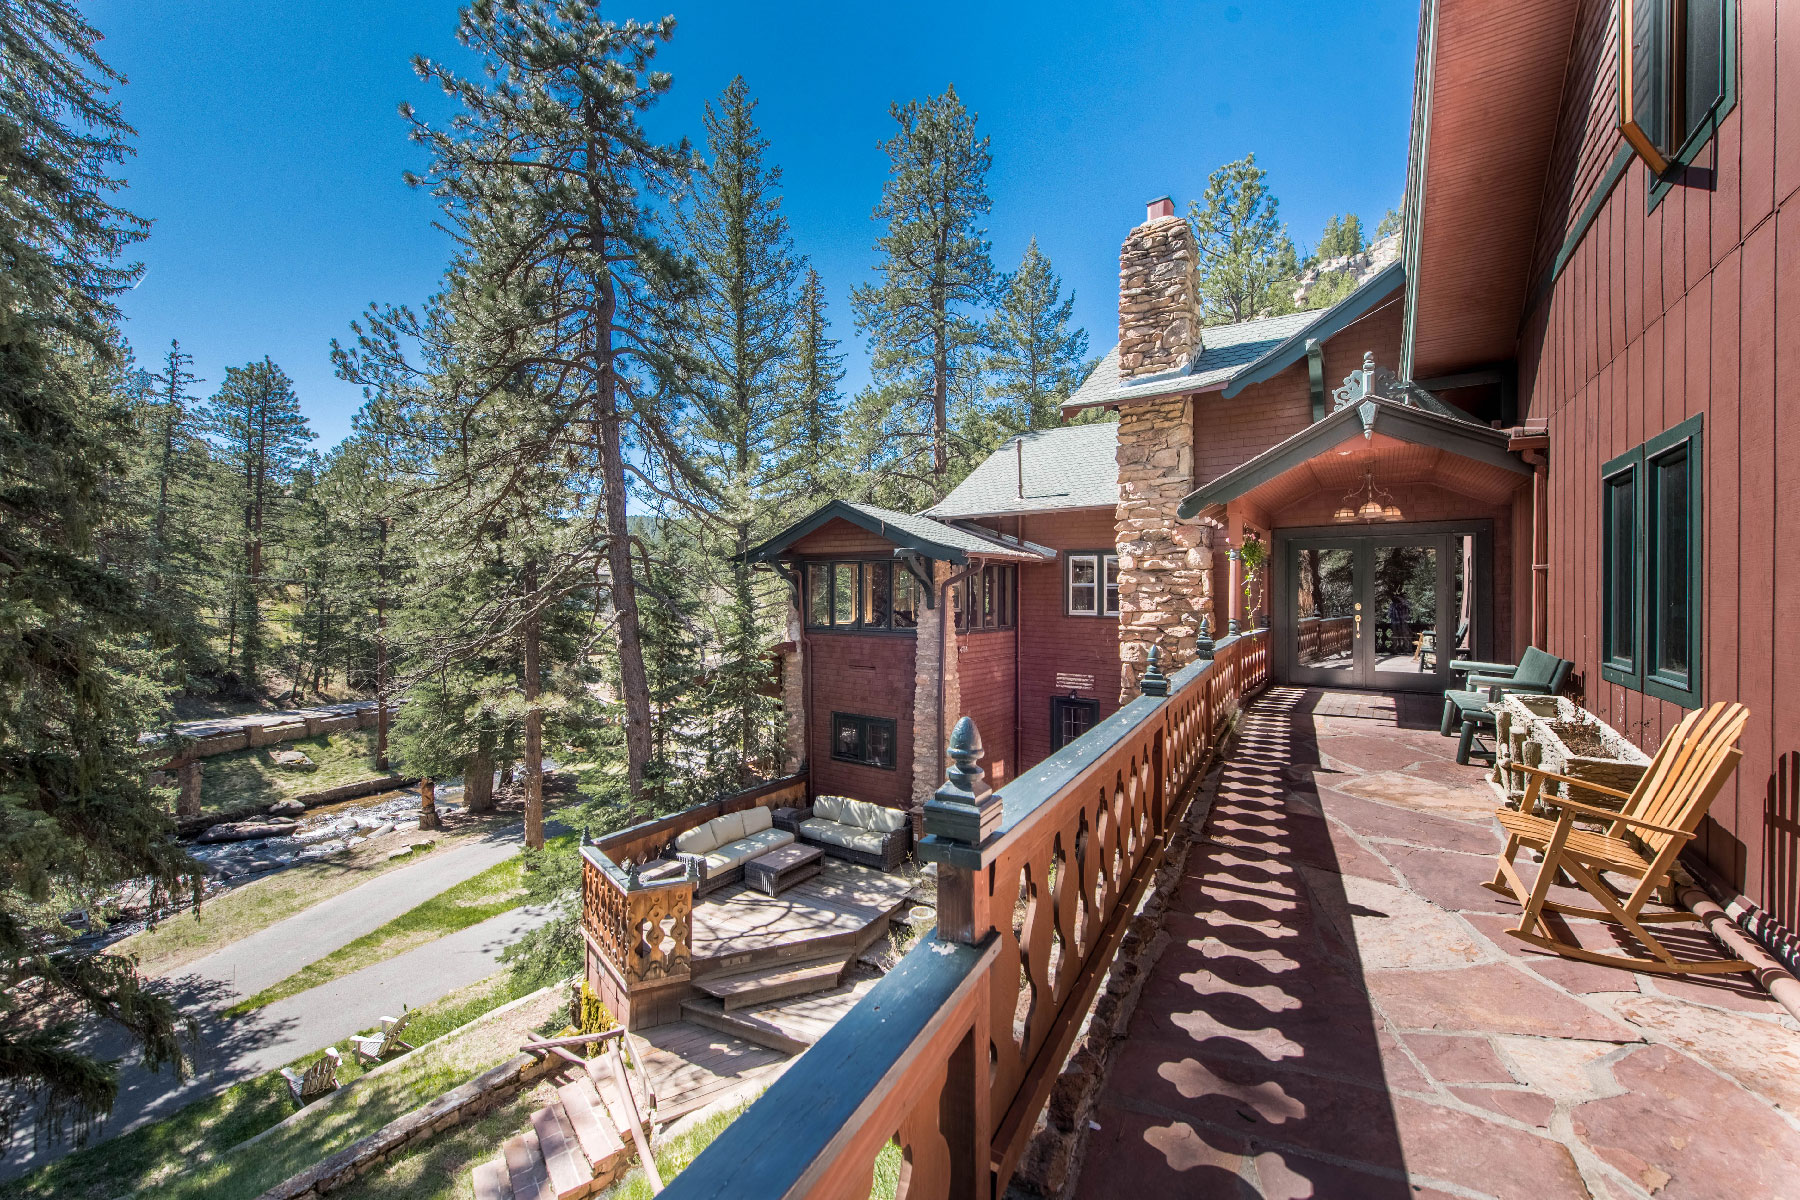 Single Family Home for Sale at Rippling Waters Estate 30754 Upper Bear Creek Road Evergreen, Colorado, 80439 United States